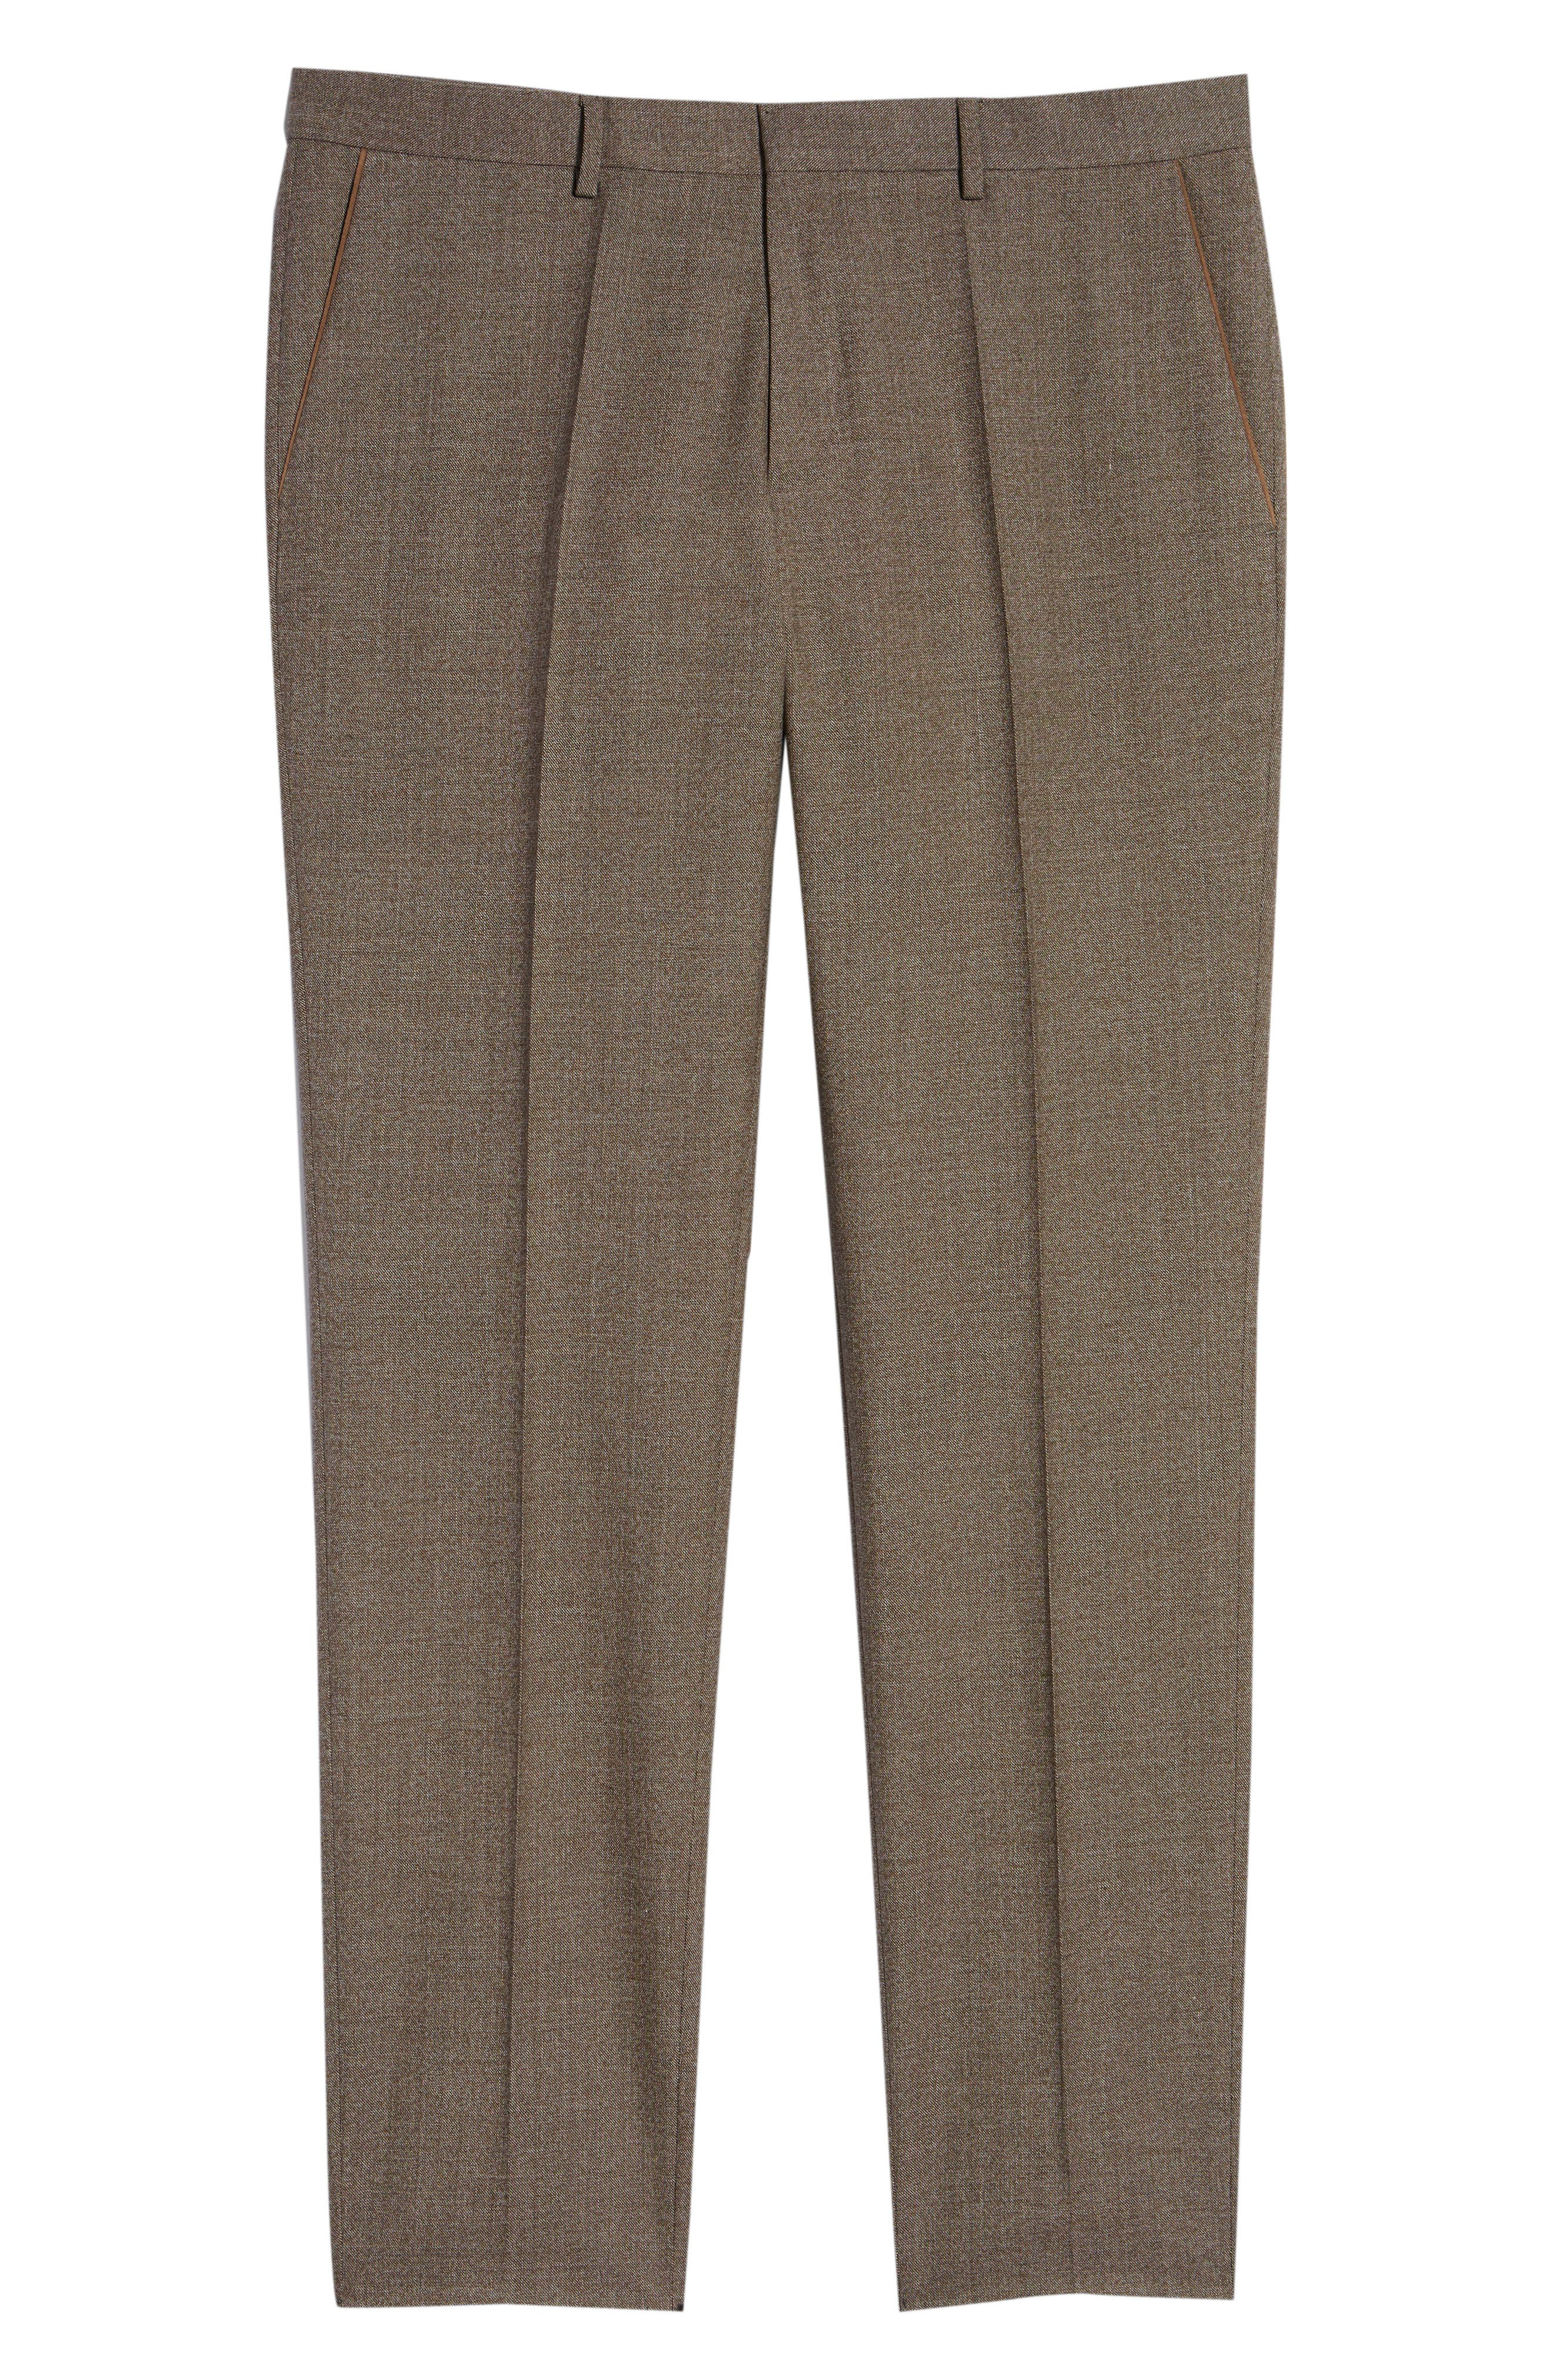 Giro Flat Front Solid Wool & Cotton Trousers,                             Alternate thumbnail 6, color,                             LIGHT/ PASTEL BROWN